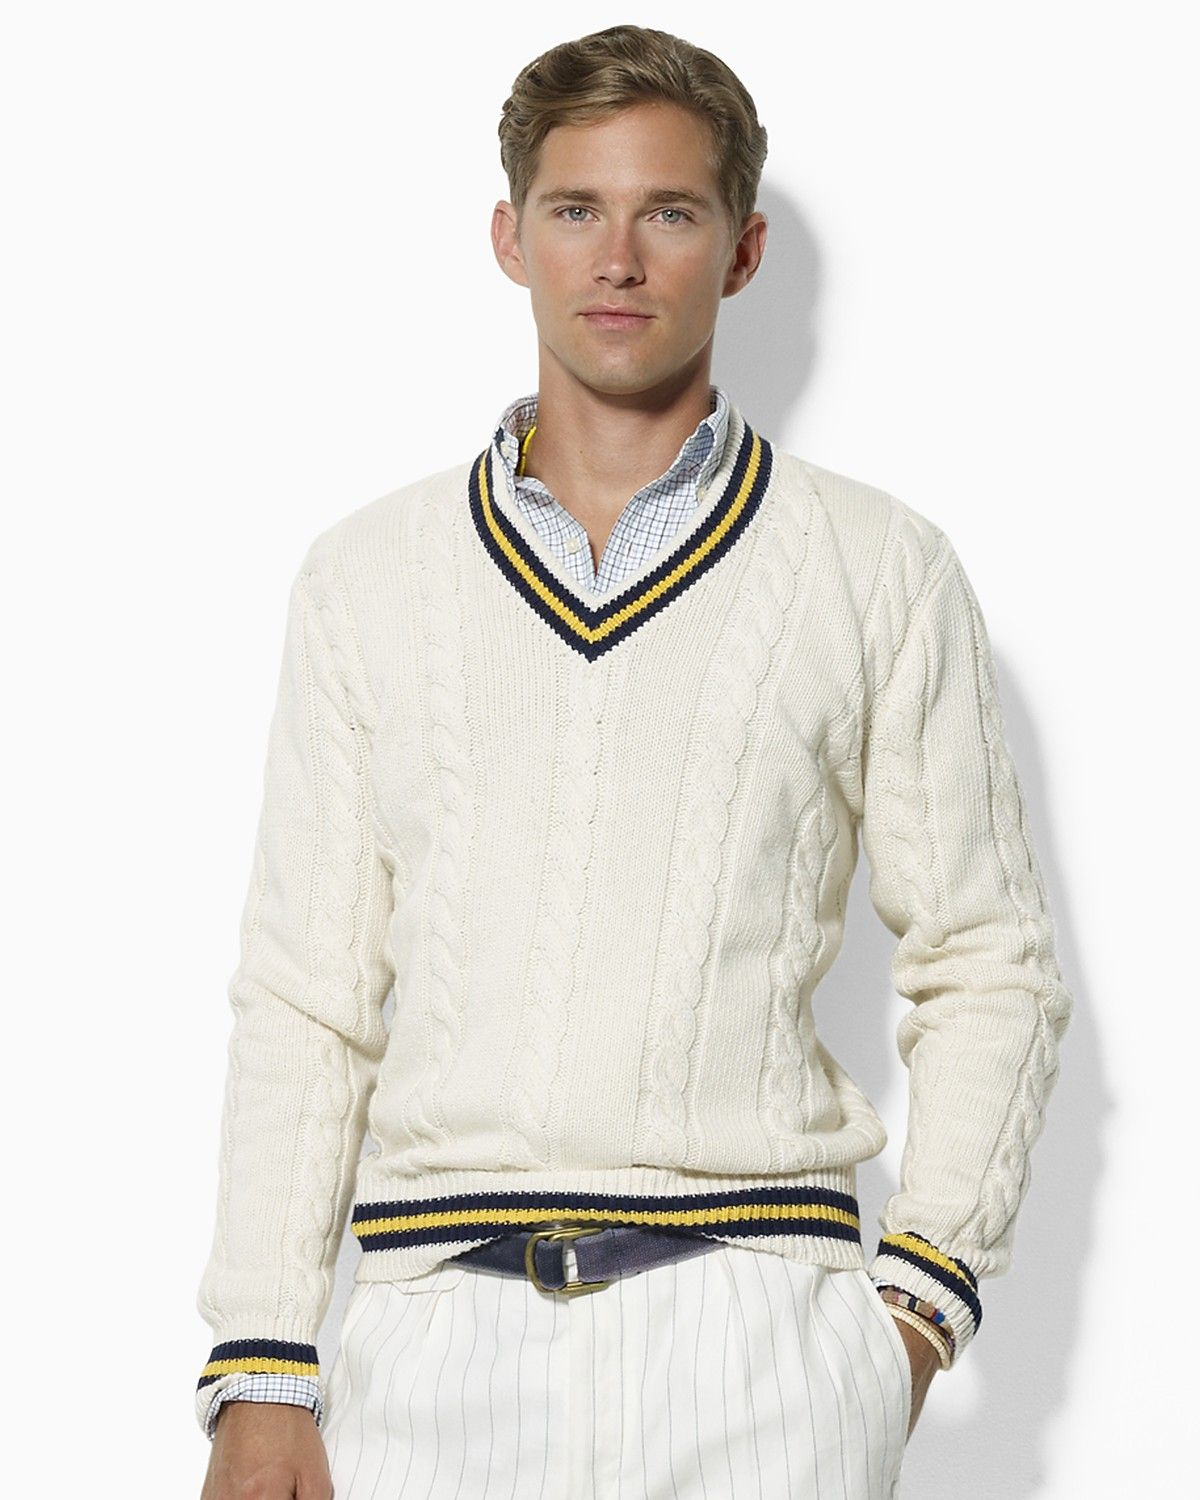 fa83666be2d63a POLO RALPH LAUREN CABLE-KNIT CRICKET SWEATER | My Style | Polo ...